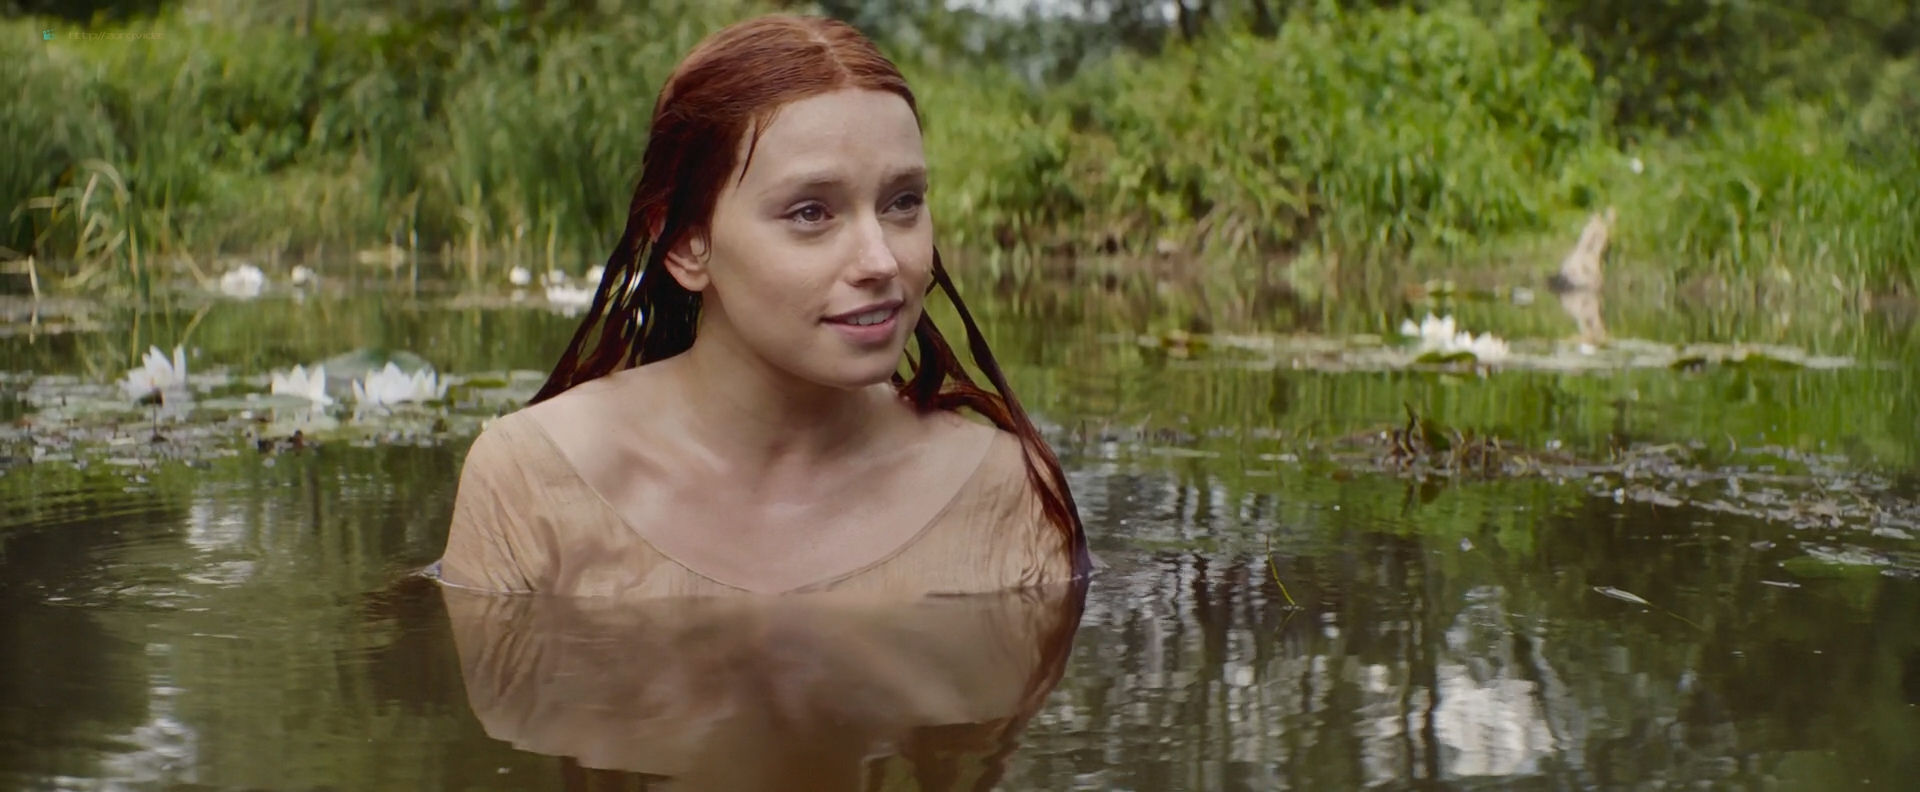 Daisy Ridley hot and sexy - Ophelia (2019) HD 1080p (12)